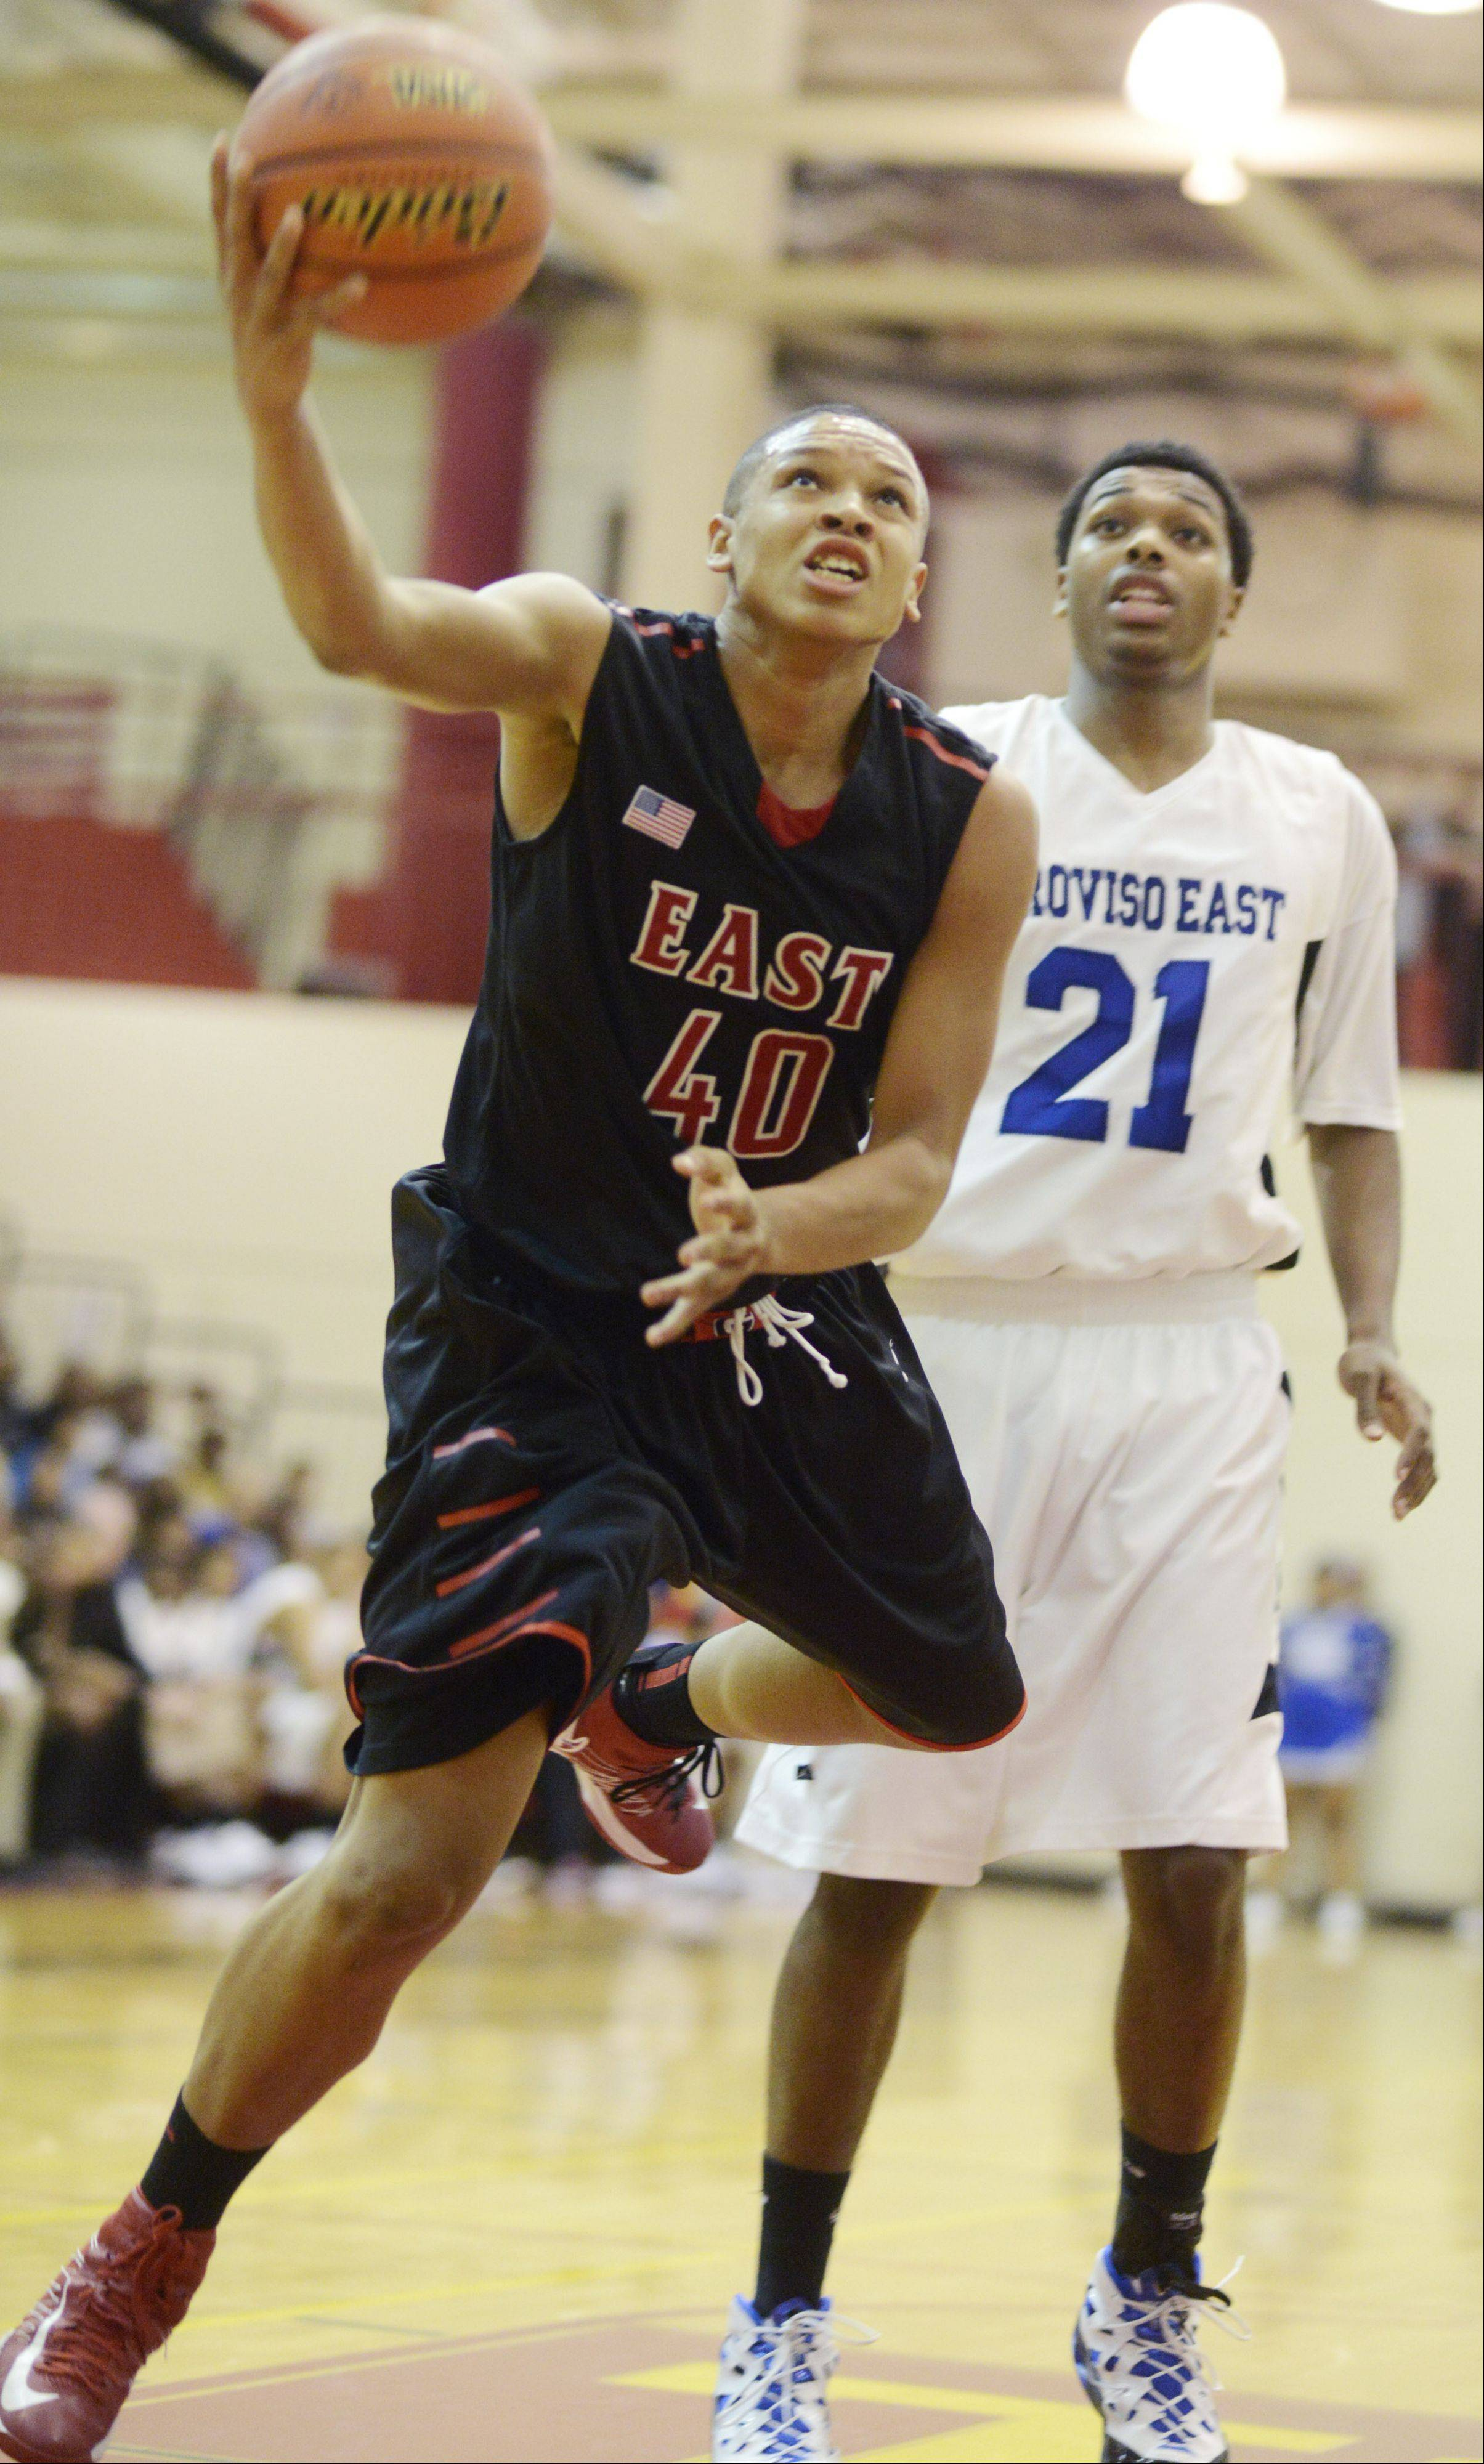 Glenbard East will leave the DuPage Valley Conference after the 2013-14 school year to join the Upstate Eight.